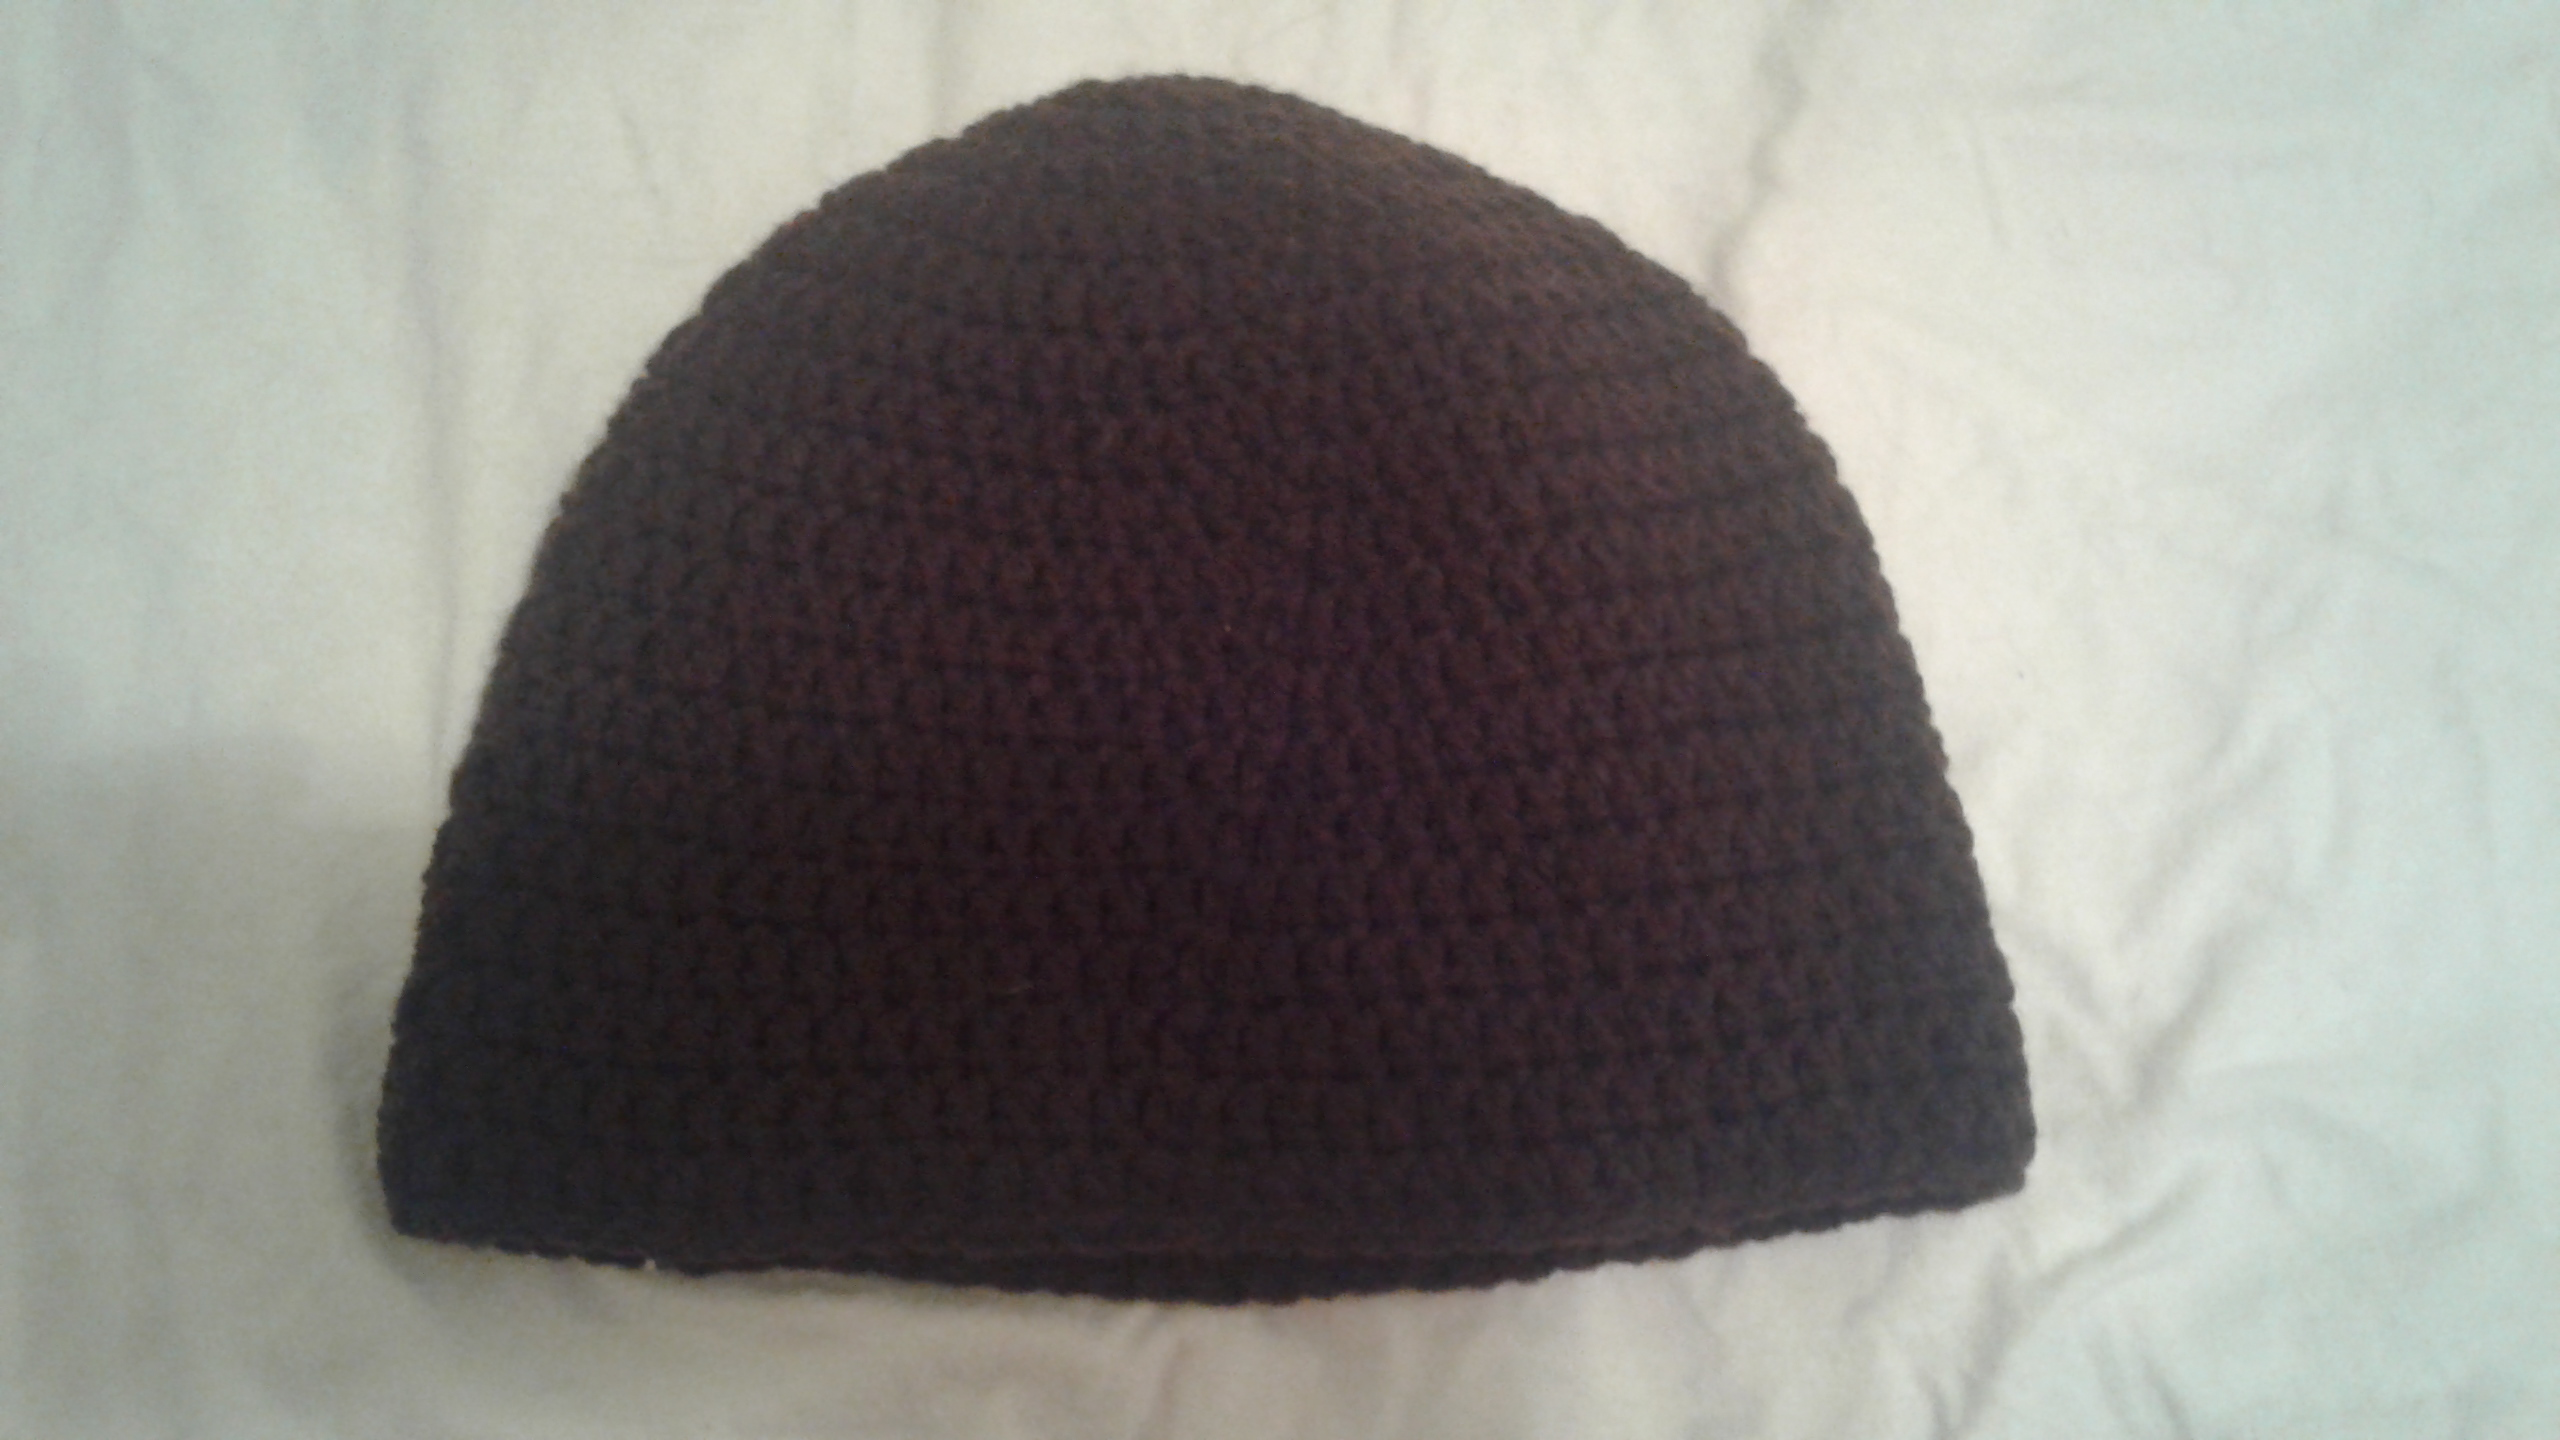 Dark Brown Adult Size Winter Hat - Simple Crochet